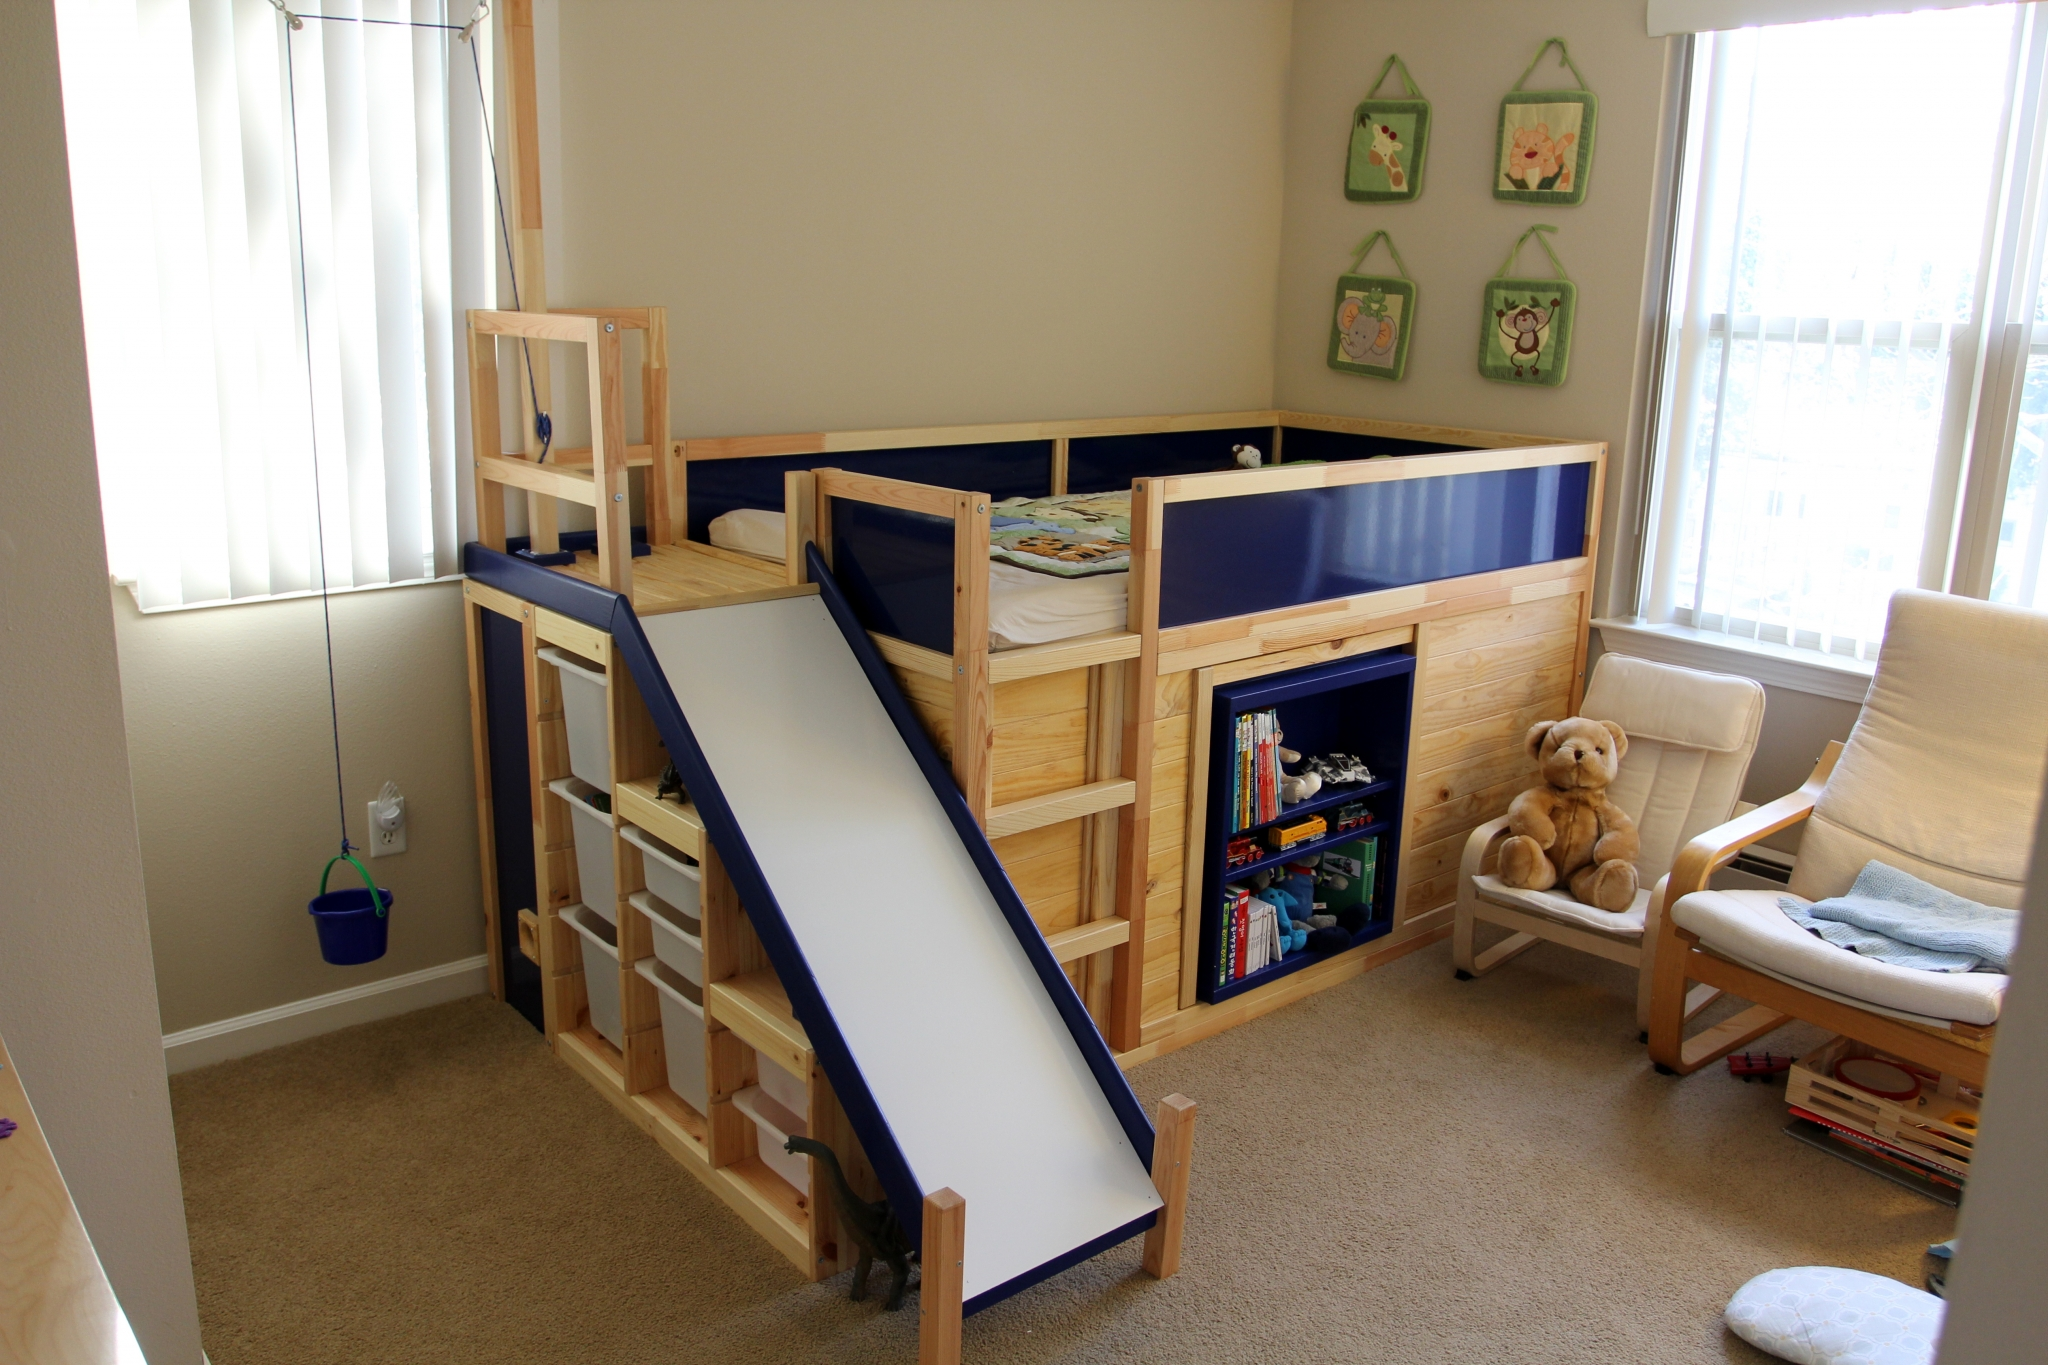 trademarks kids beds bed ikea modern wooden bunk design